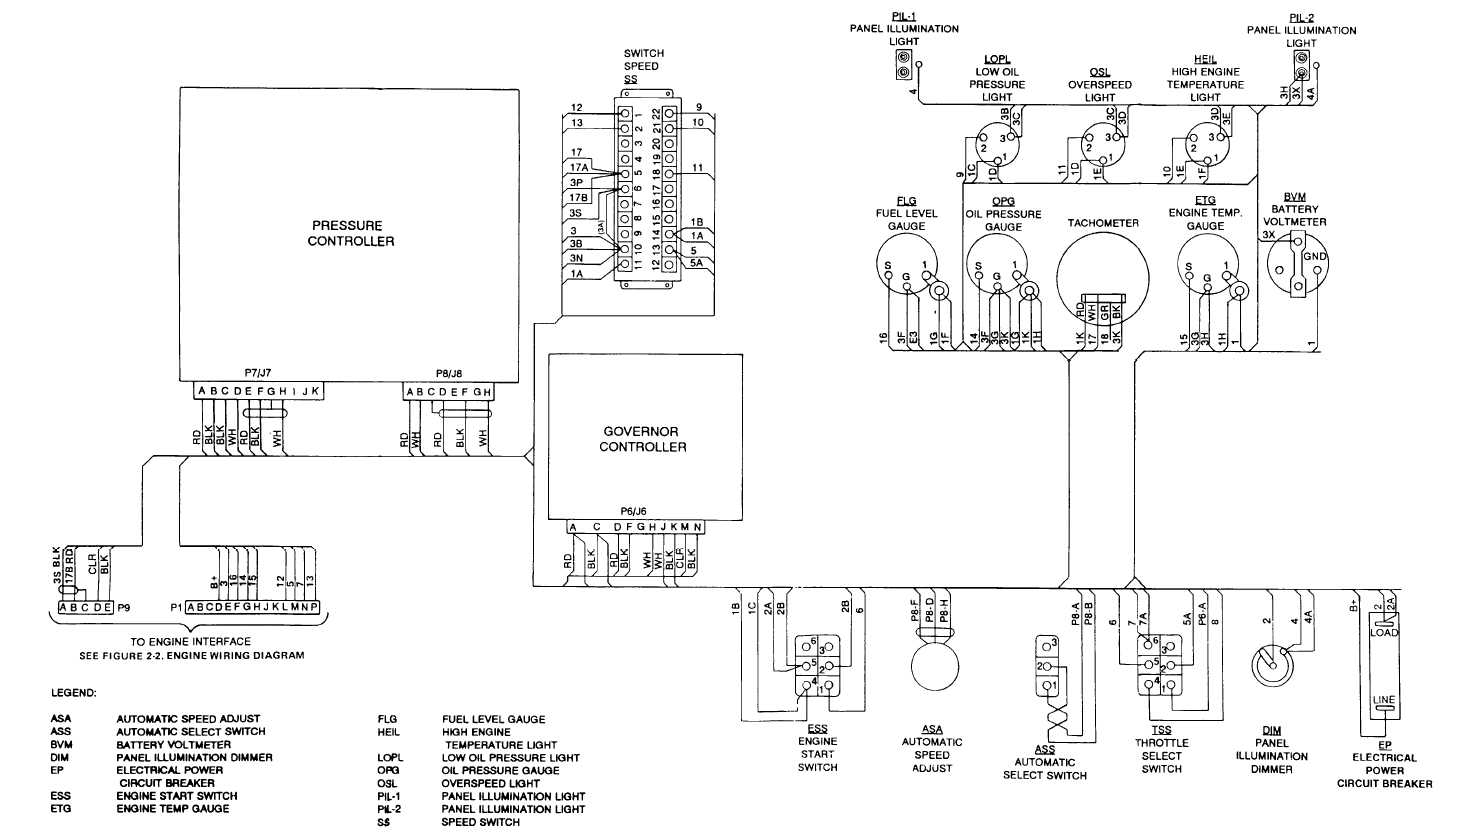 TM 10 4320 315 24_18_1 figure 2 1 control panel wiring diagram (sheet 1 of 4) vcb panel wiring diagram at mr168.co